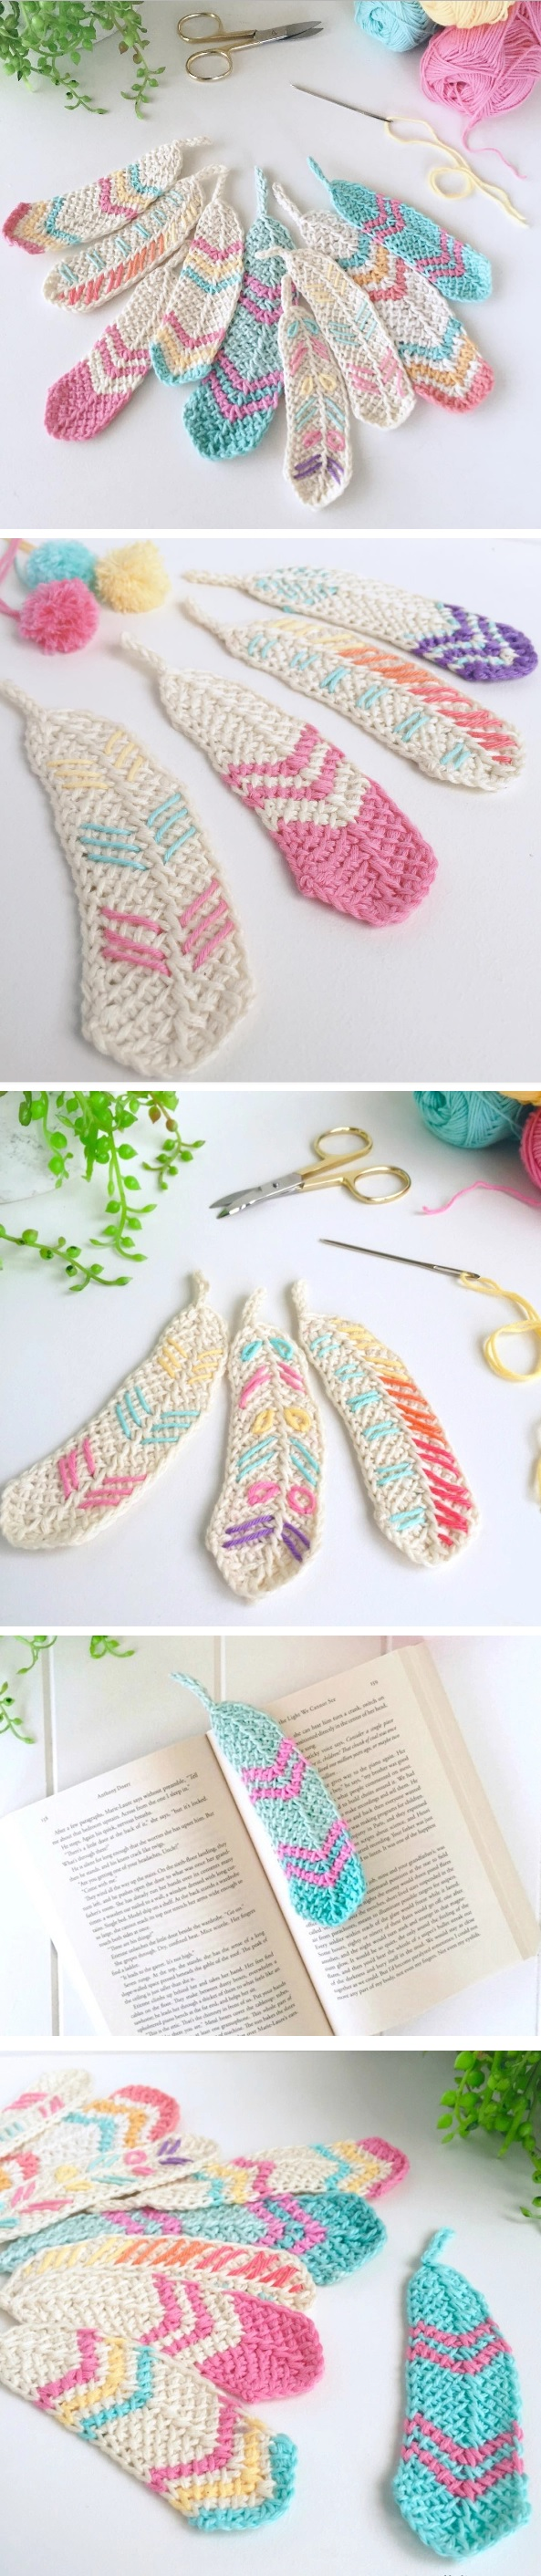 Crochet FeatherTutorial